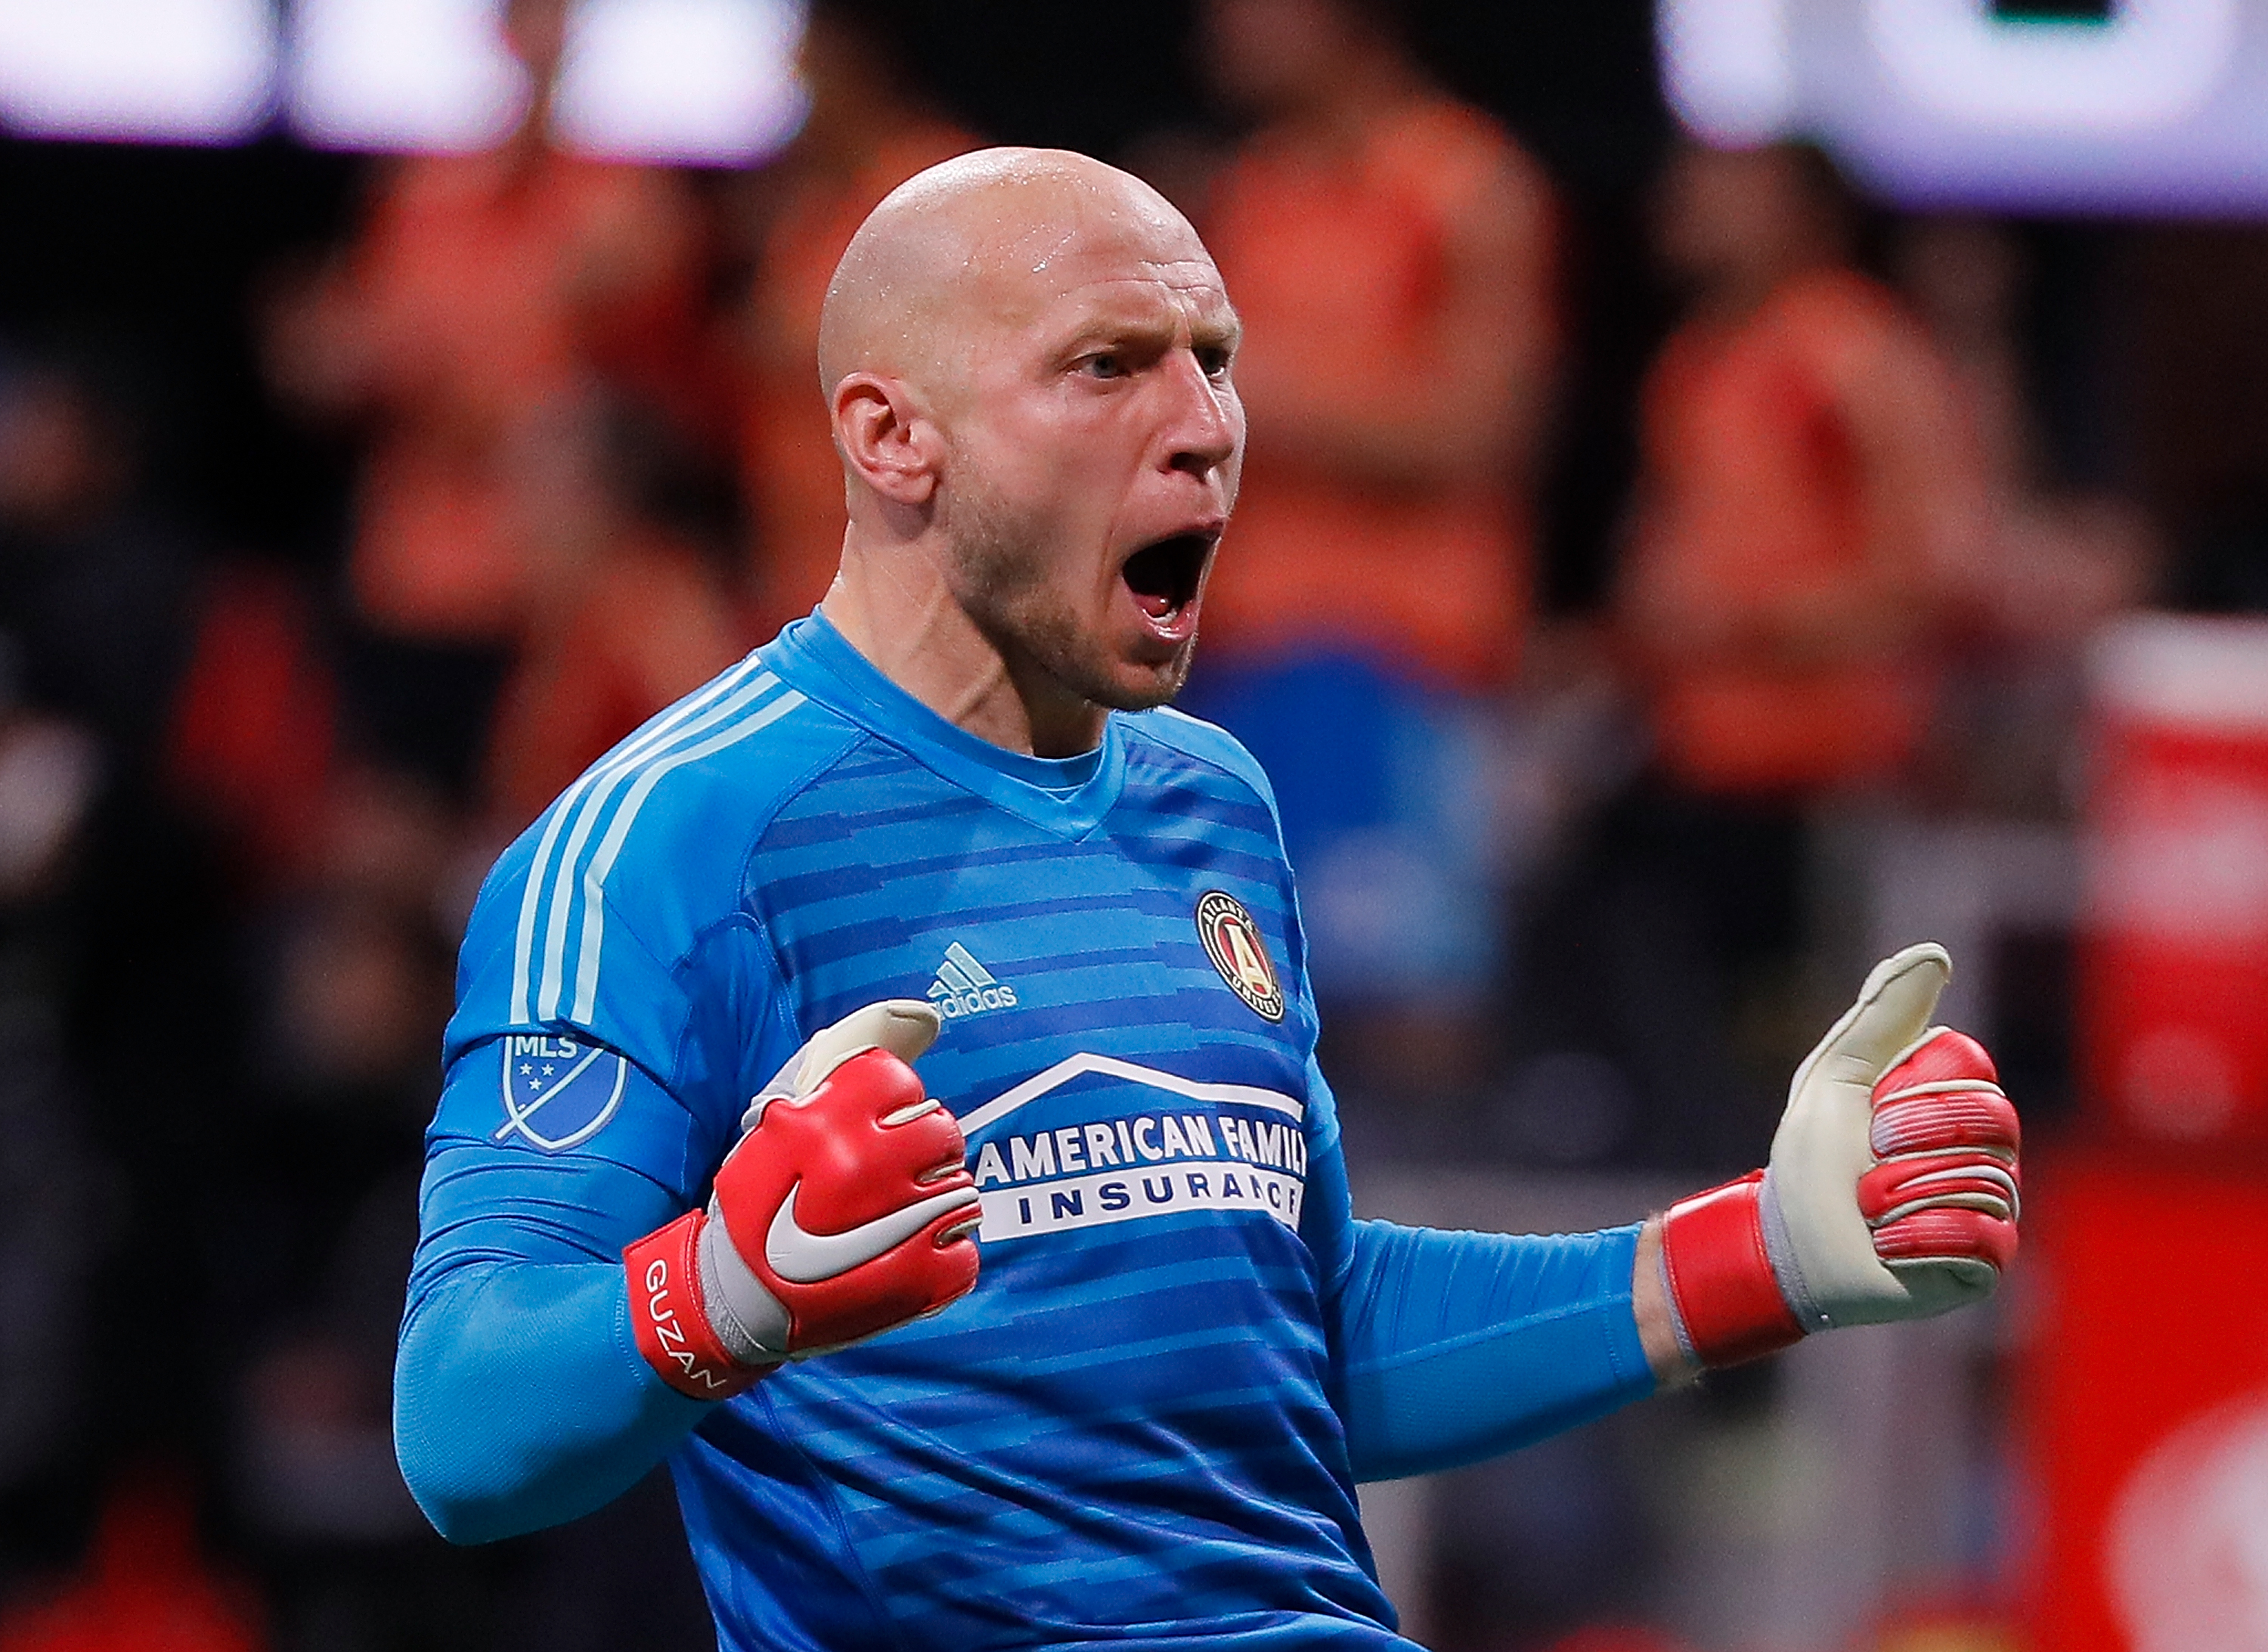 Catching up with Brad Guzan: He's still at it!